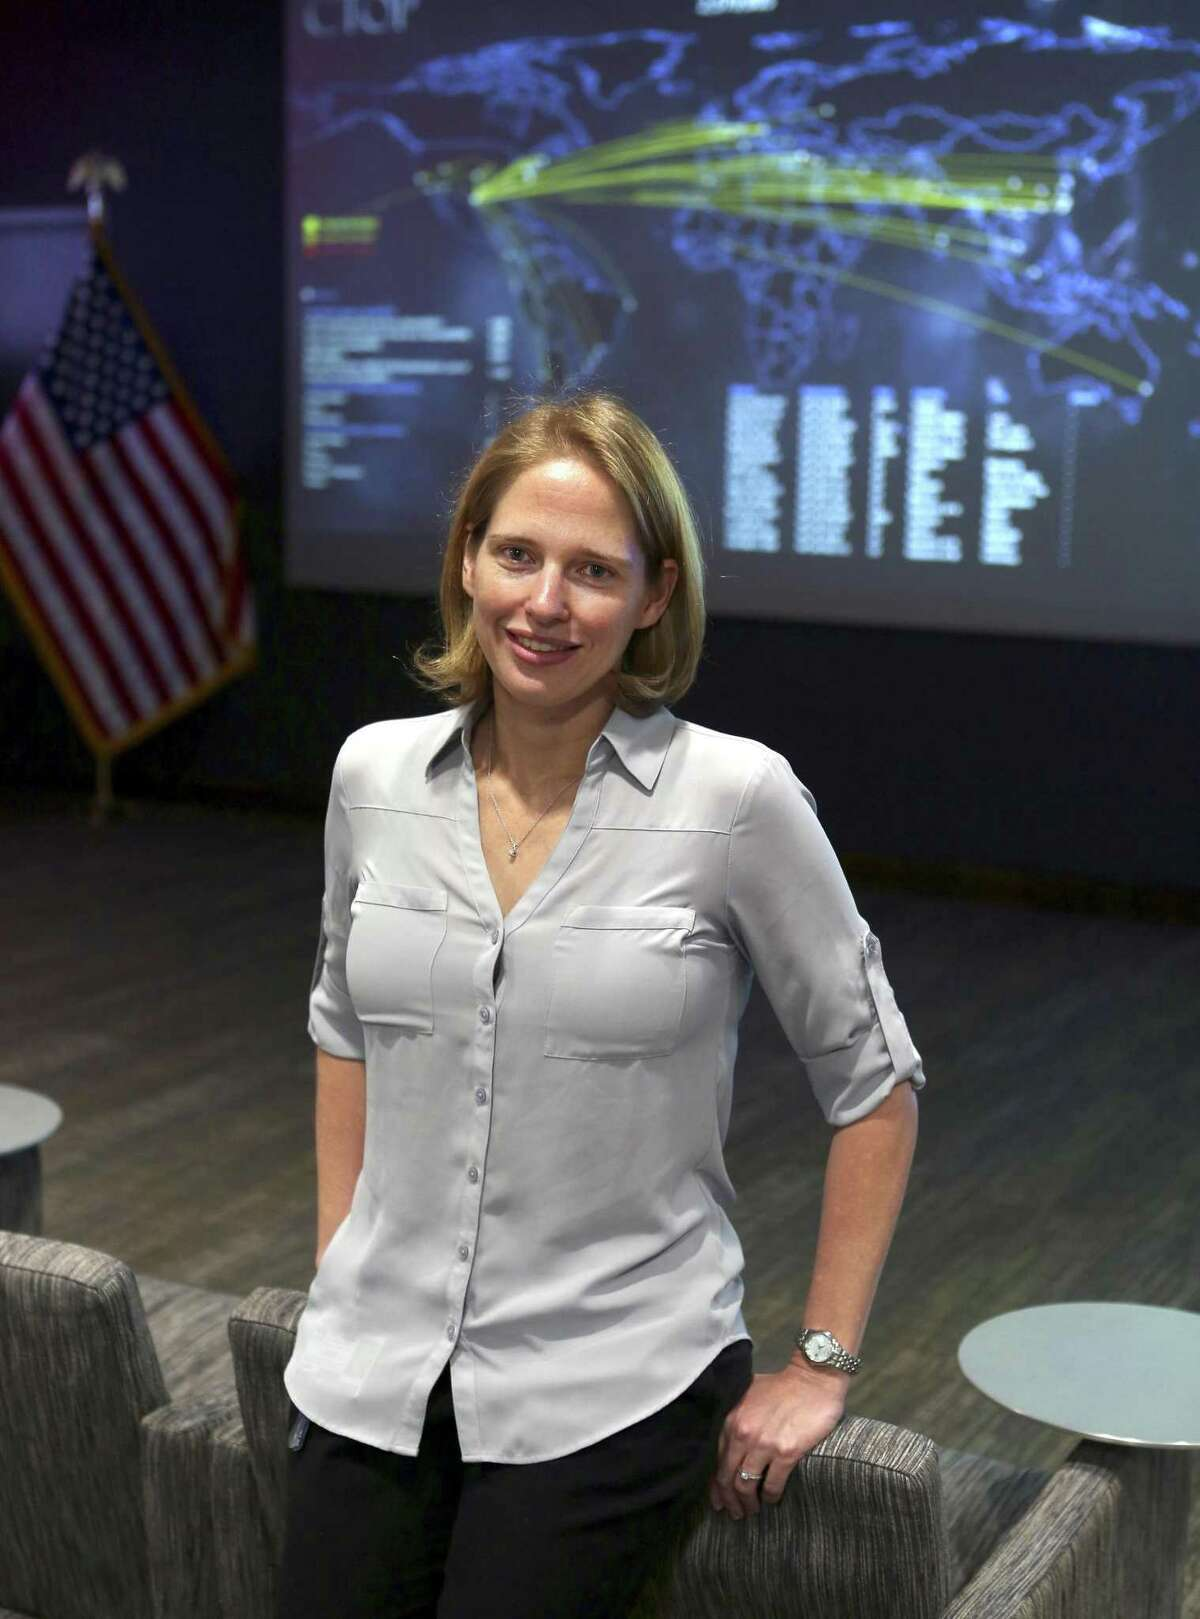 As a USAA cyber security manager, Army veteran Jessica Hazelrigg says her military and intelligence experience is invaluable.